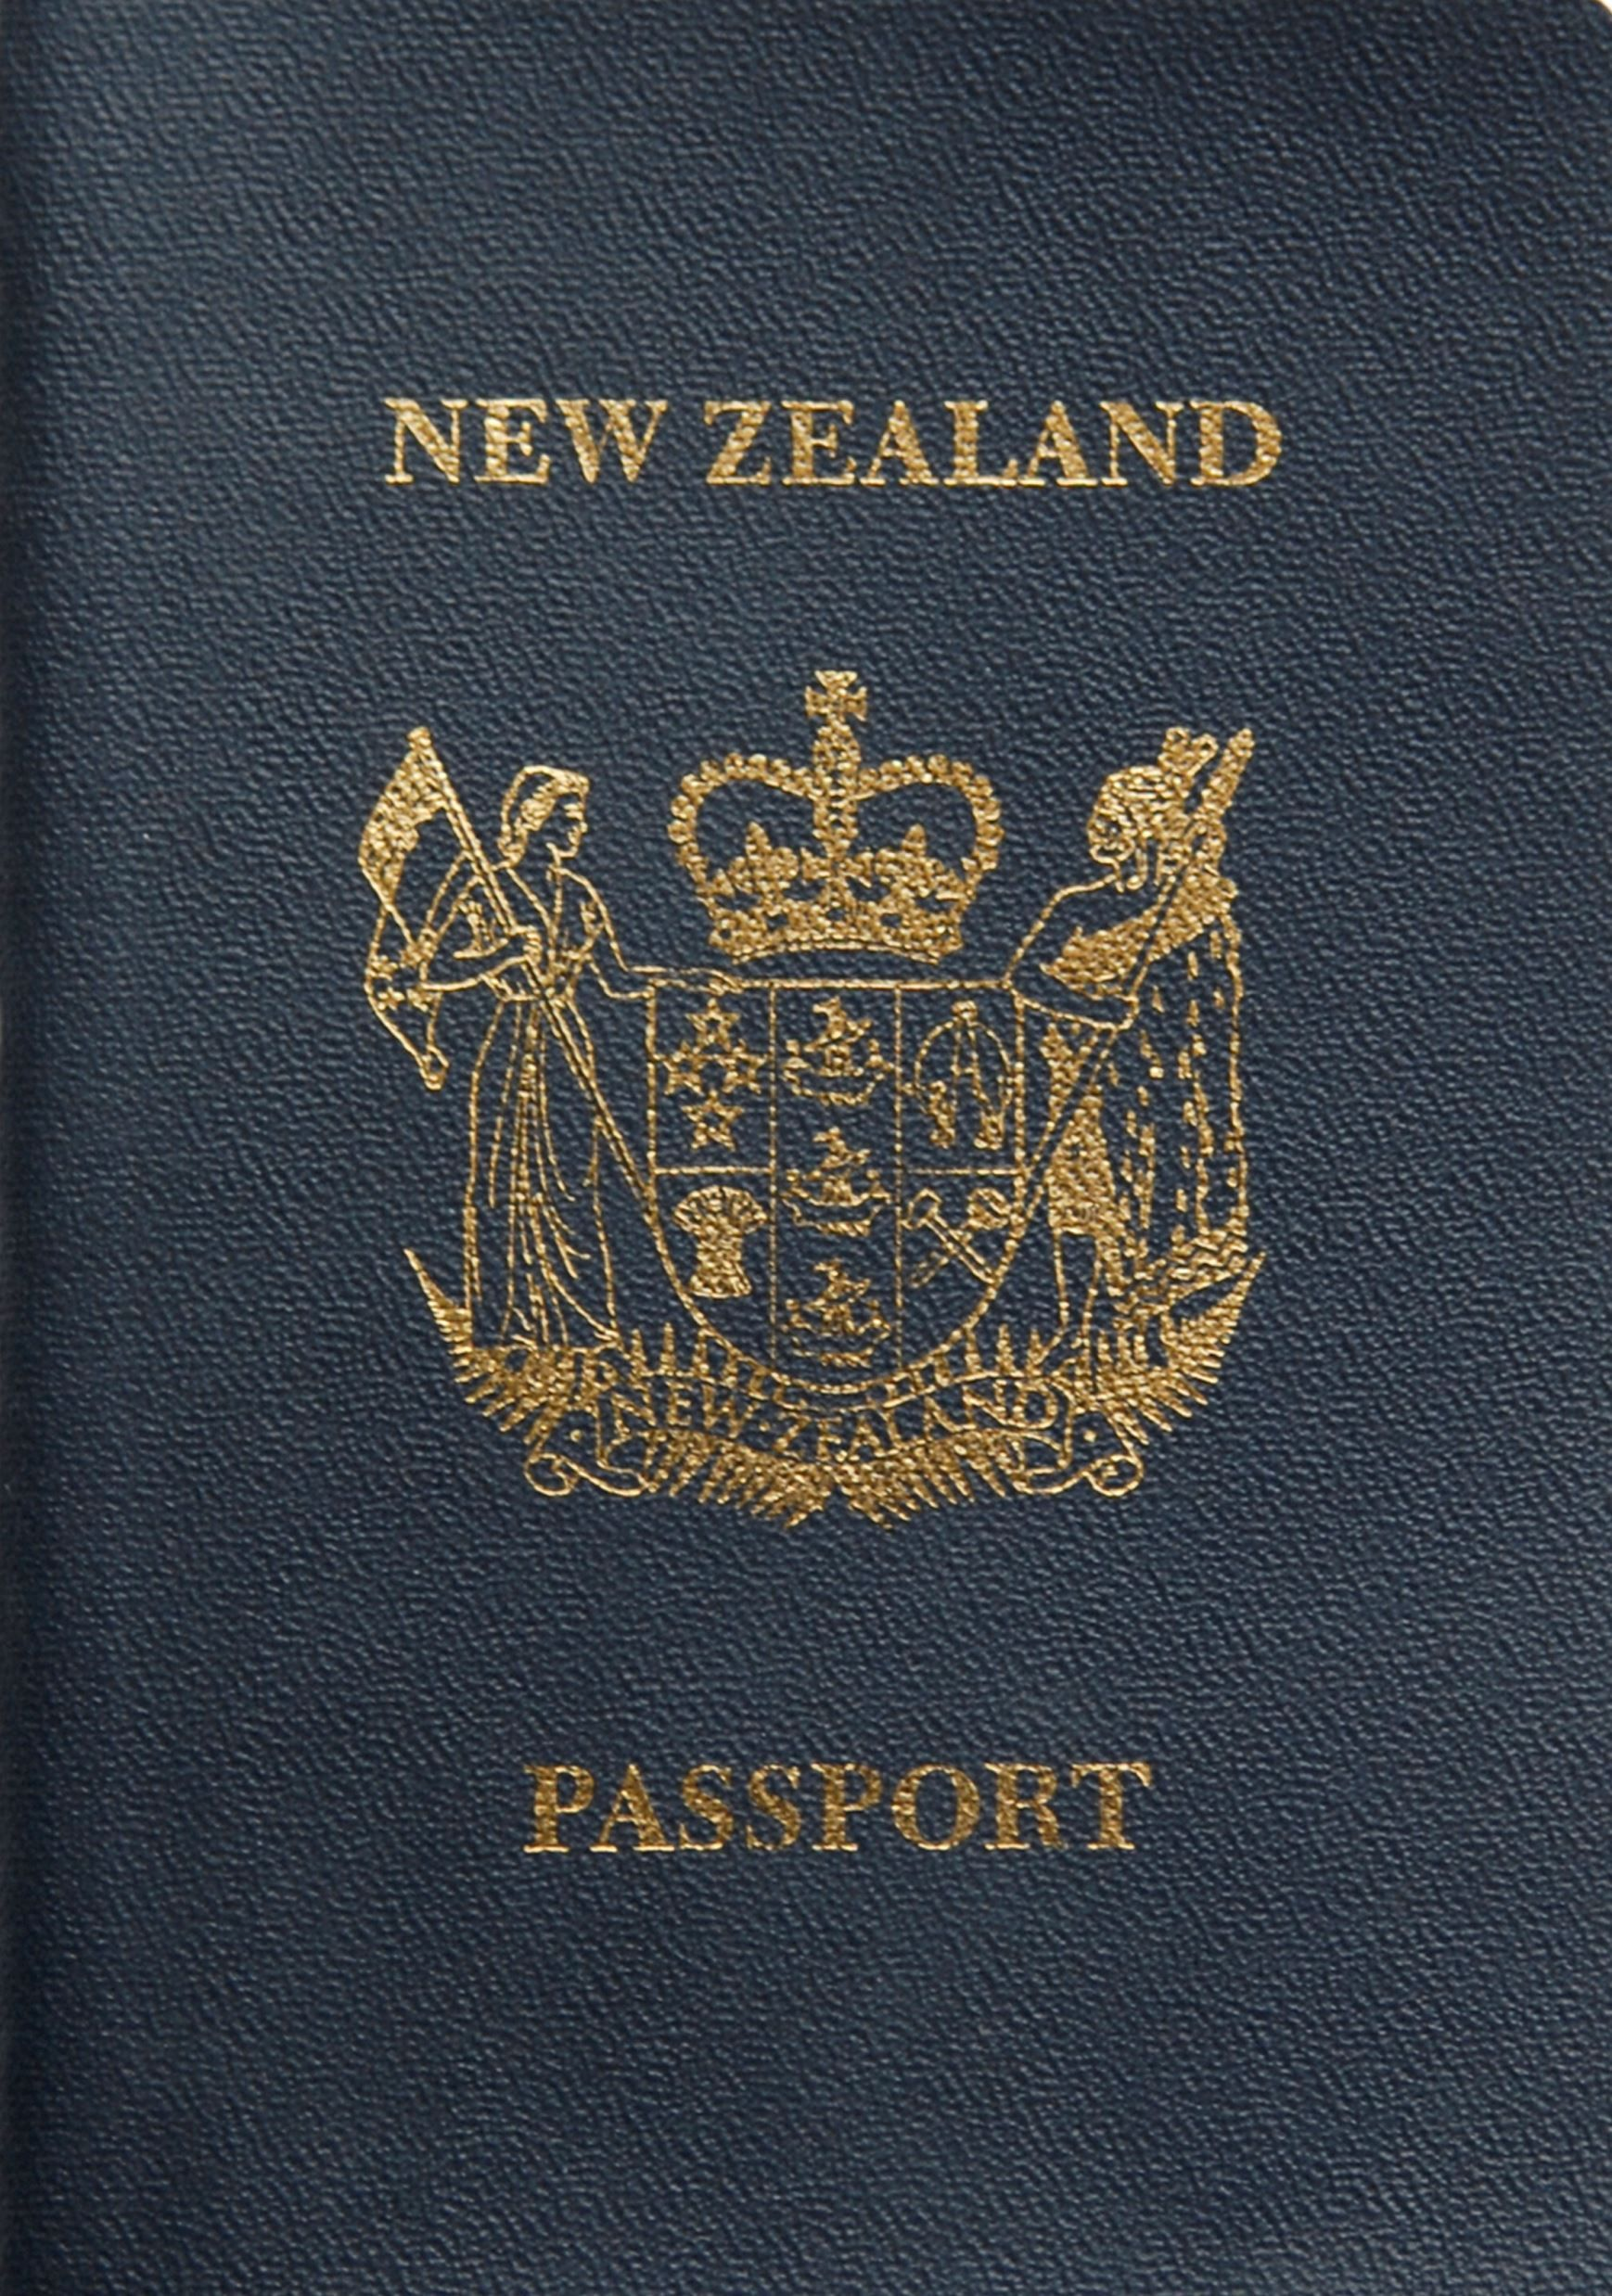 50 Countries With The Most Powerful Passports Passport Passport Online Certificates Online